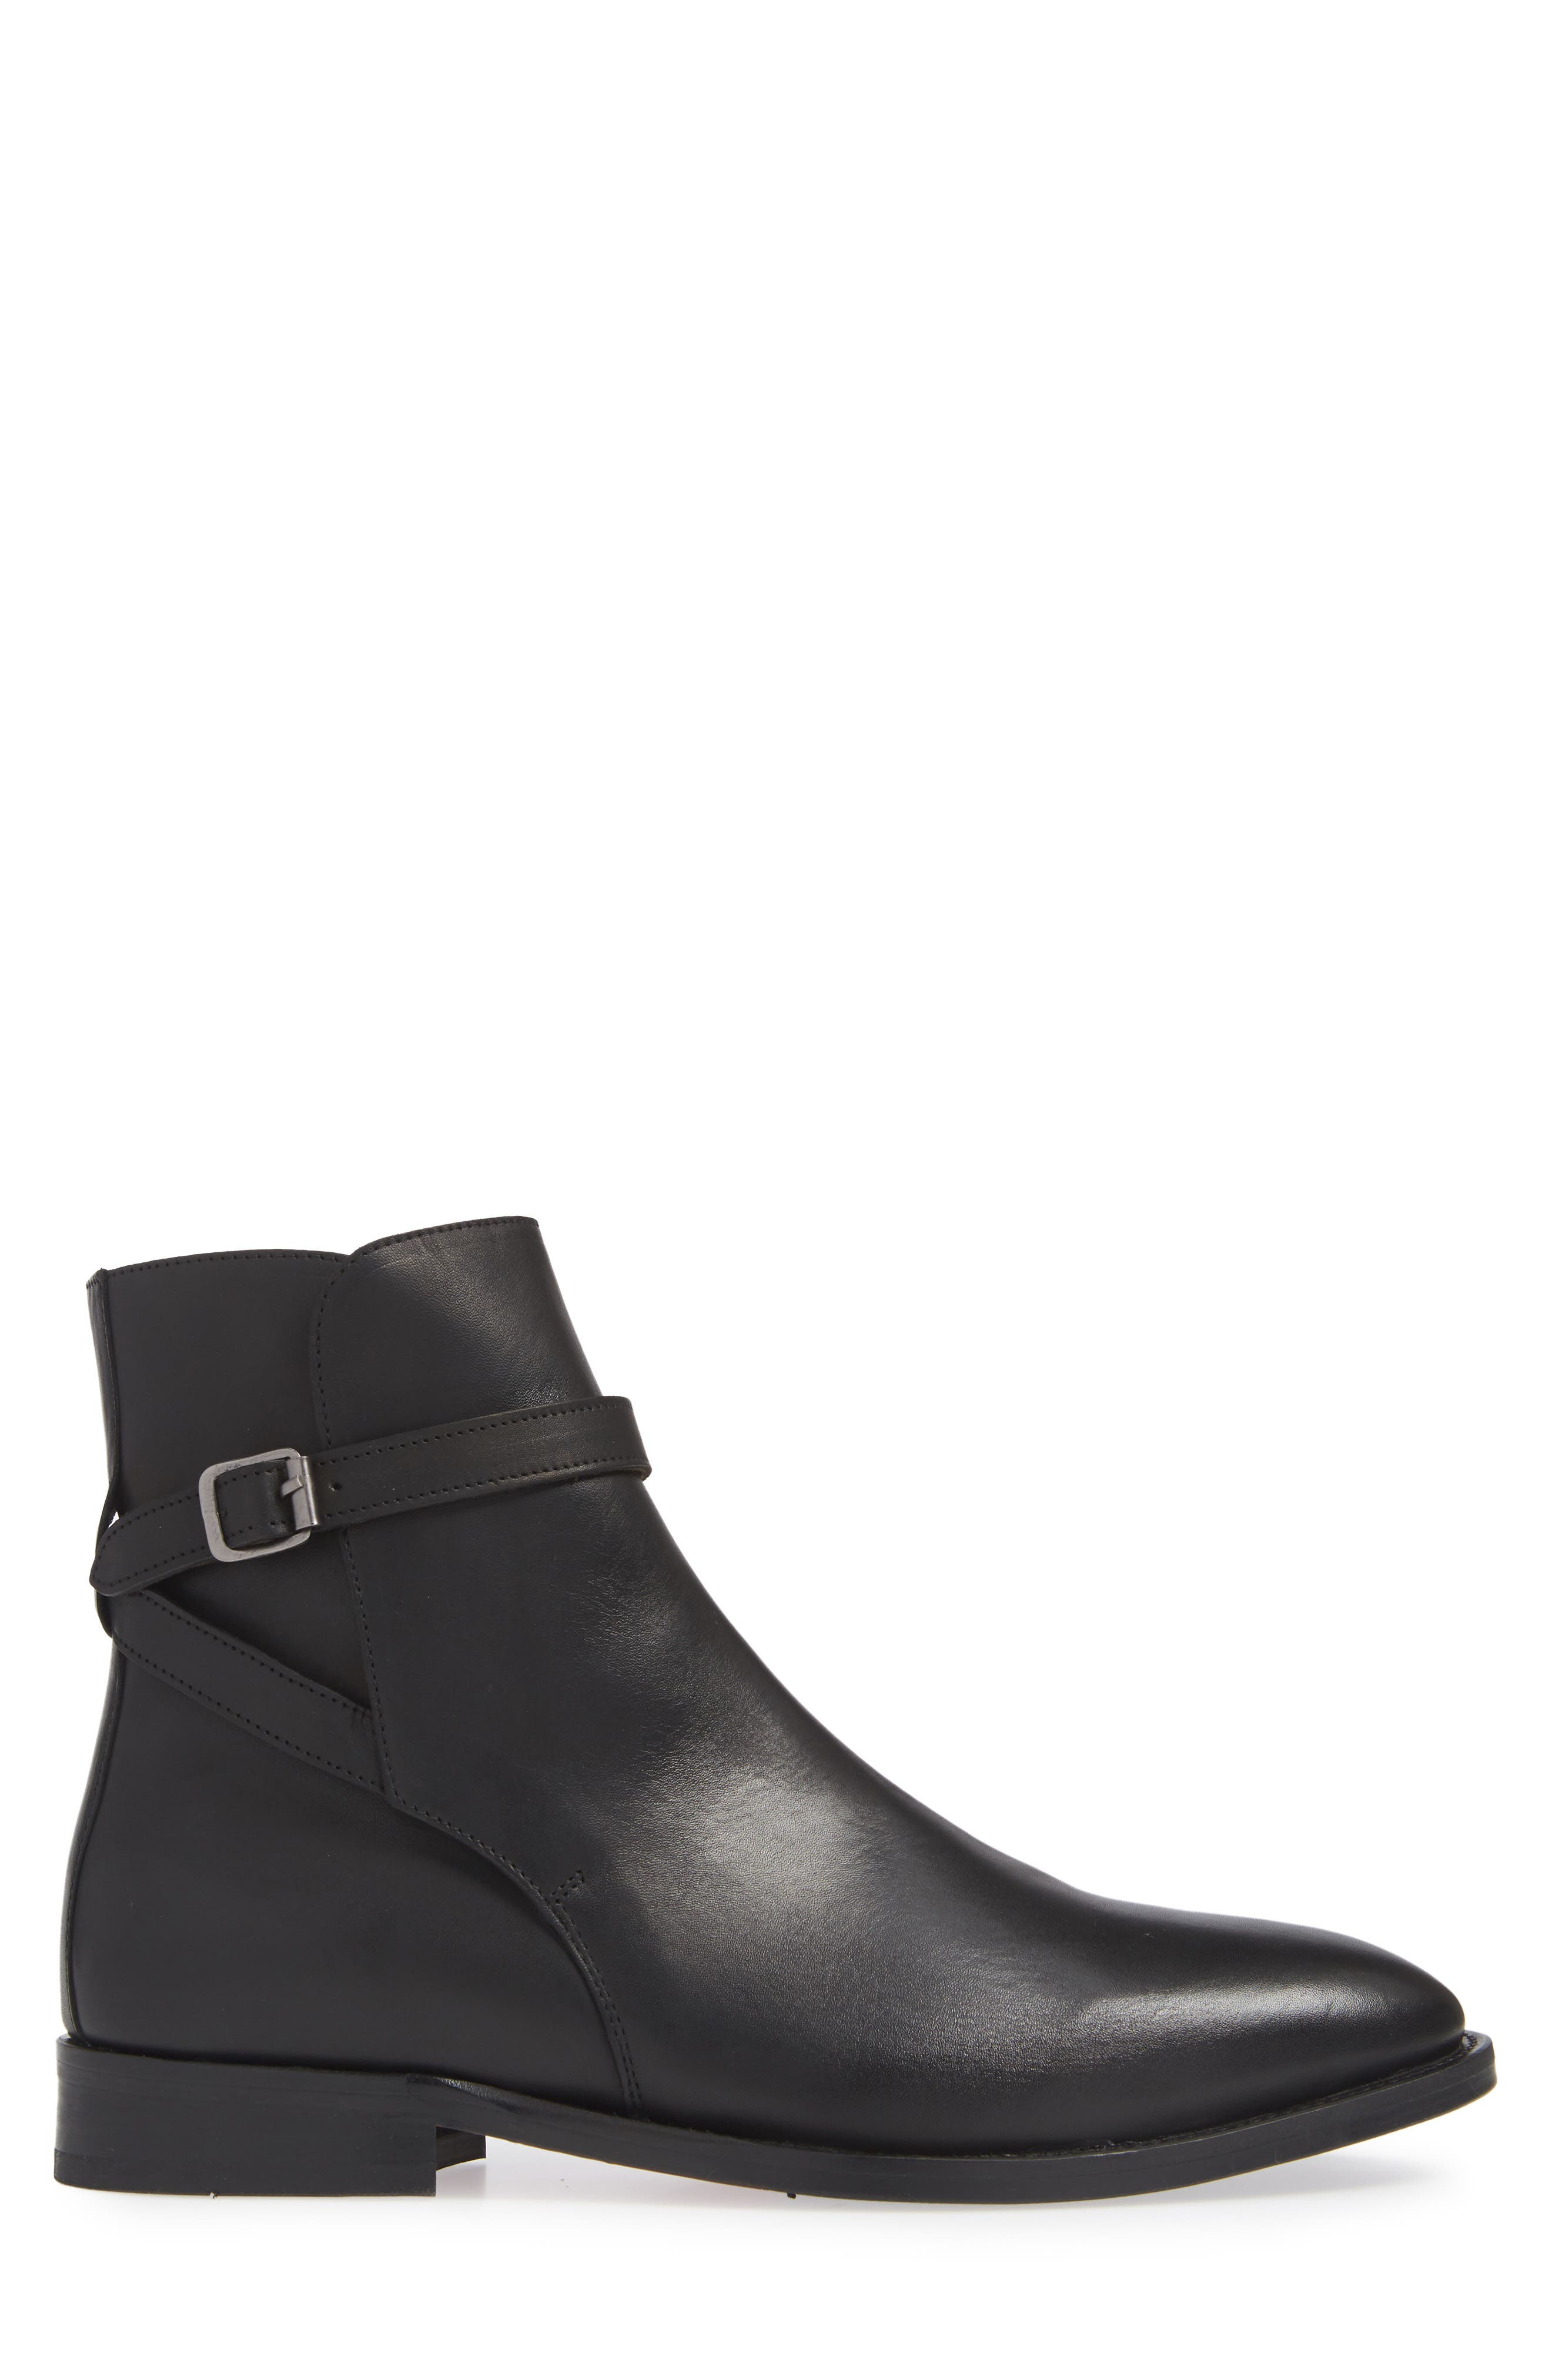 Hop Buckle Strap Boot,                             Alternate thumbnail 3, color,                             BLACK LEATHER